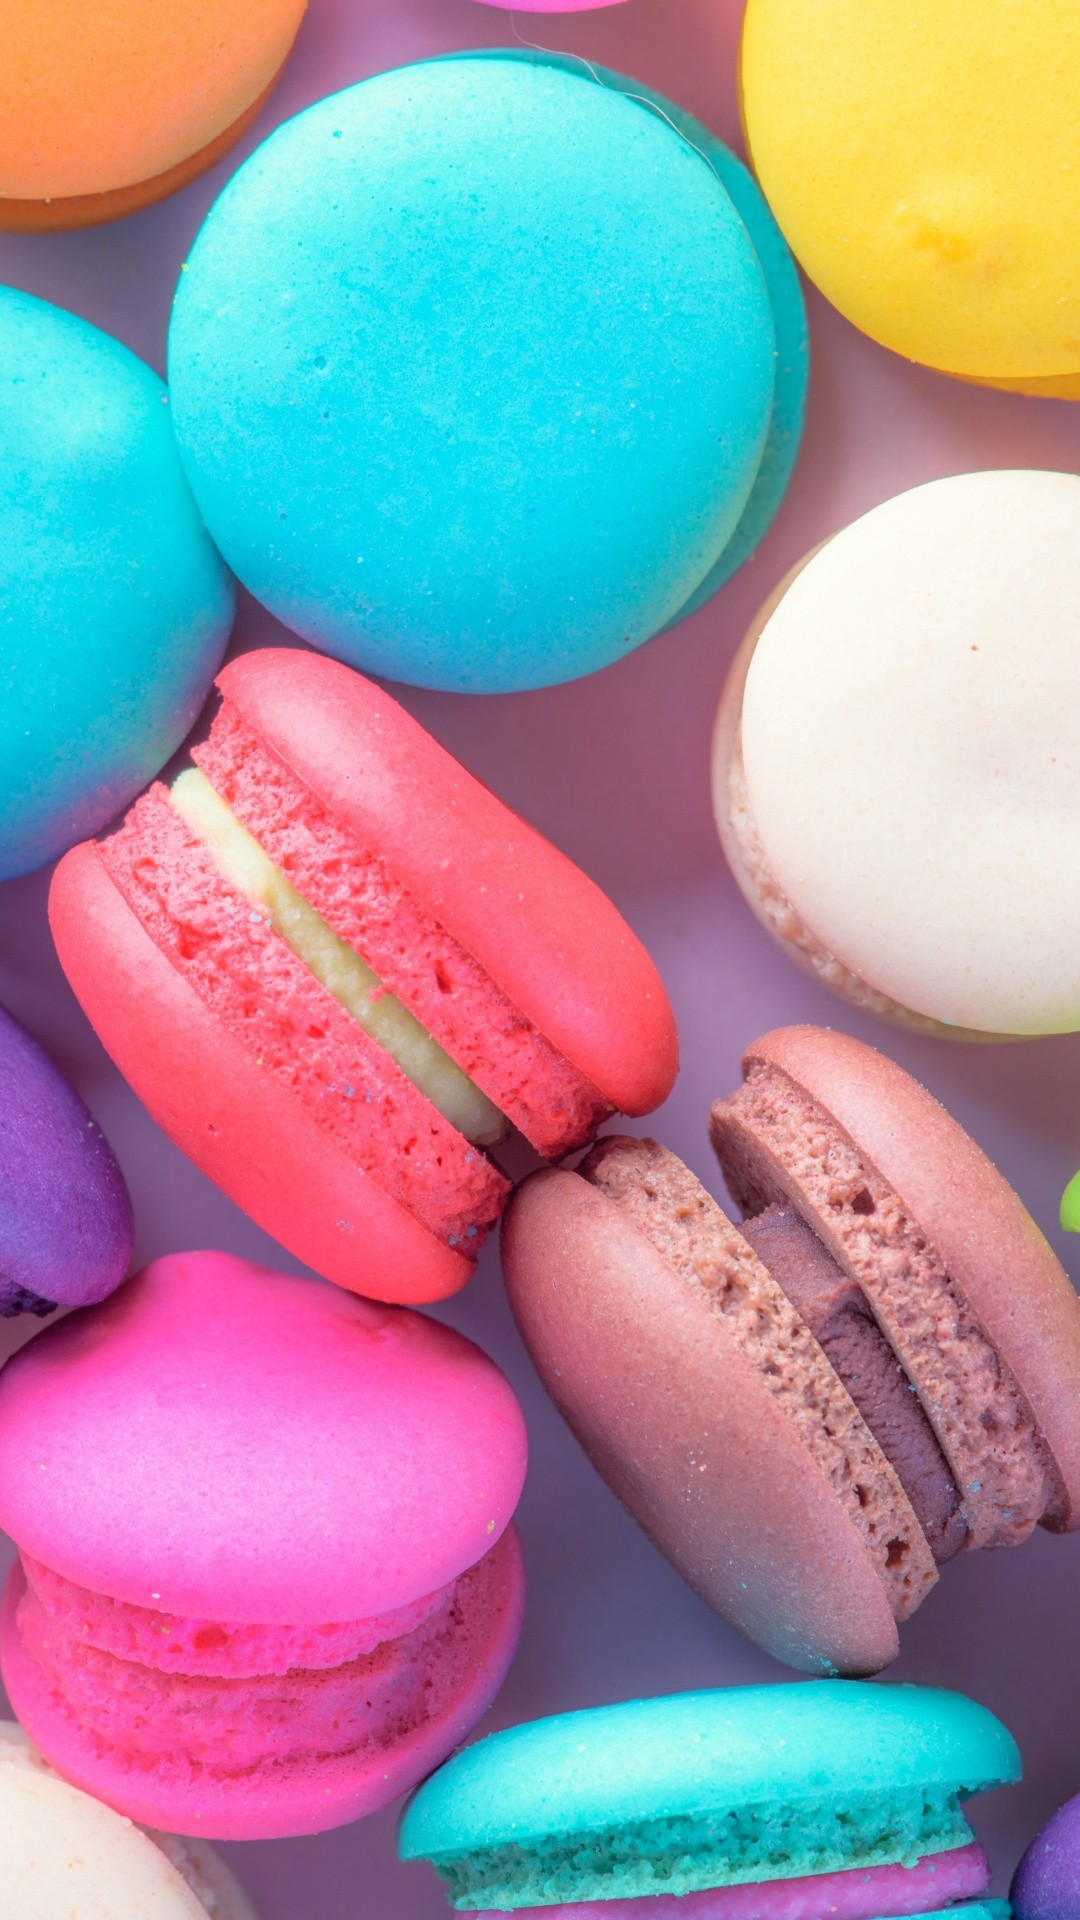 Macaroons wallpaper for iPhone